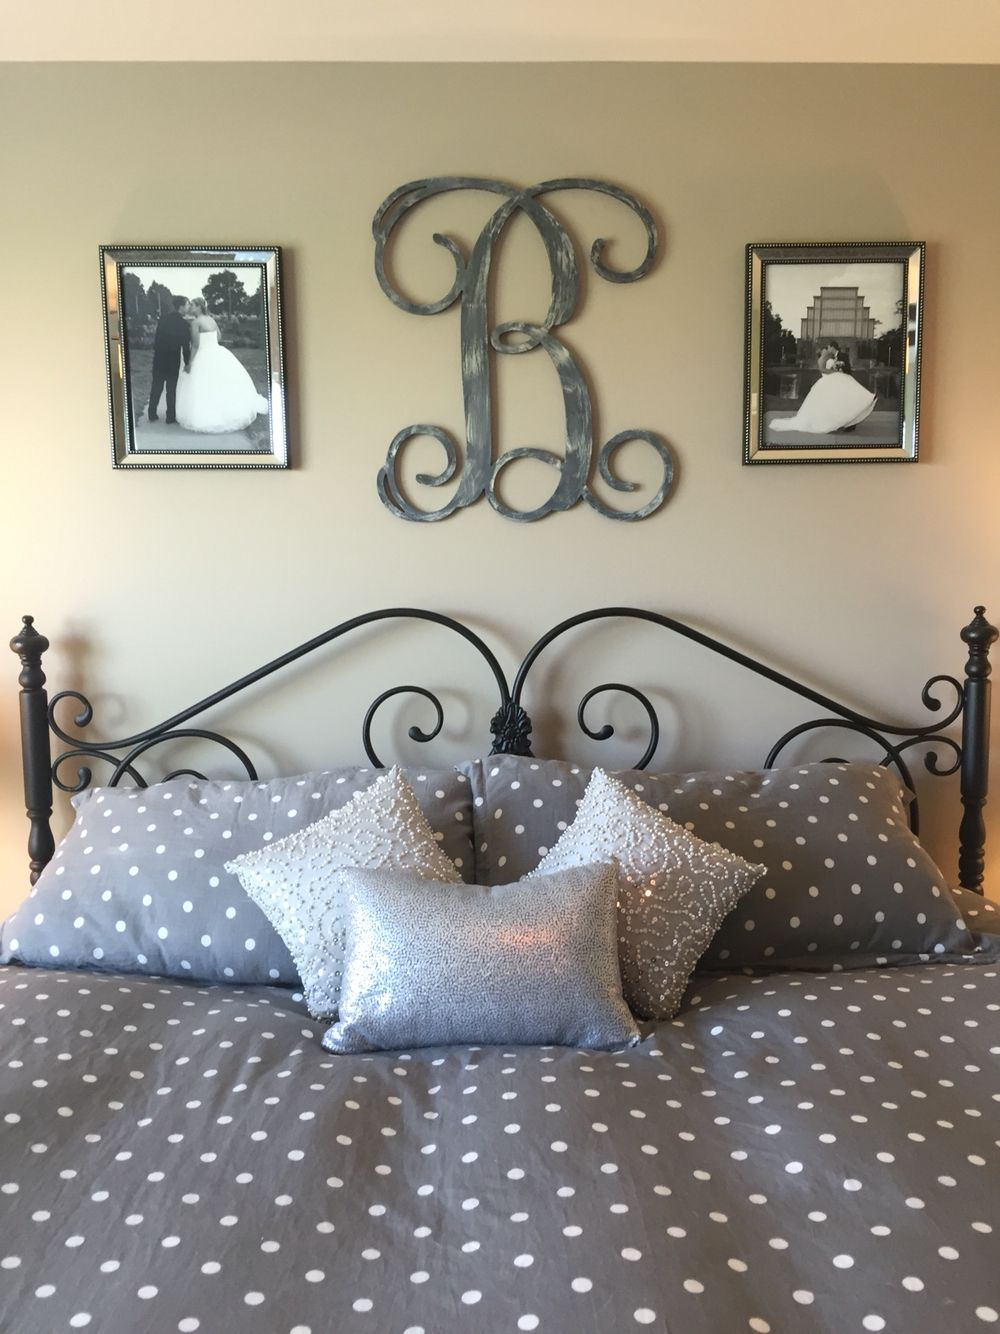 Idea for above the bed in master bedroom. Monogram and